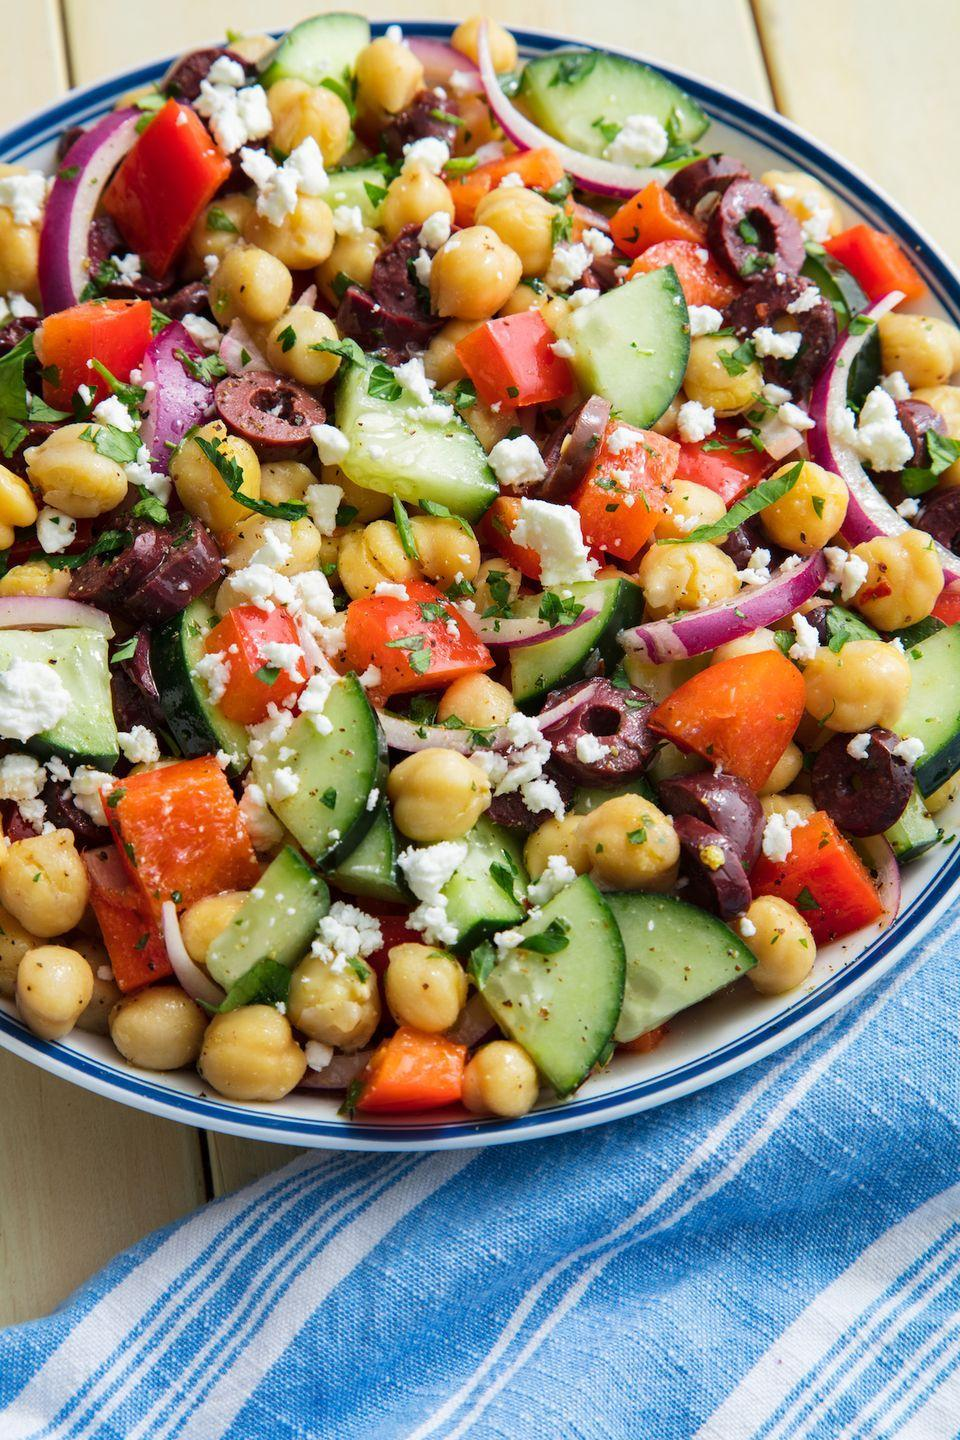 """<p>Thanks to the chickpeas, this salad will keep you full for hours. It's satisfying in a way that leafy greens never could be. Sorry we're not sorry, kale.</p><p>Get the recipe from <a href=""""https://www.delish.com/cooking/recipe-ideas/a19885314/mediterranean-chickpea-salad-recipe/"""" rel=""""nofollow noopener"""" target=""""_blank"""" data-ylk=""""slk:Delish"""" class=""""link rapid-noclick-resp"""">Delish</a>.</p>"""